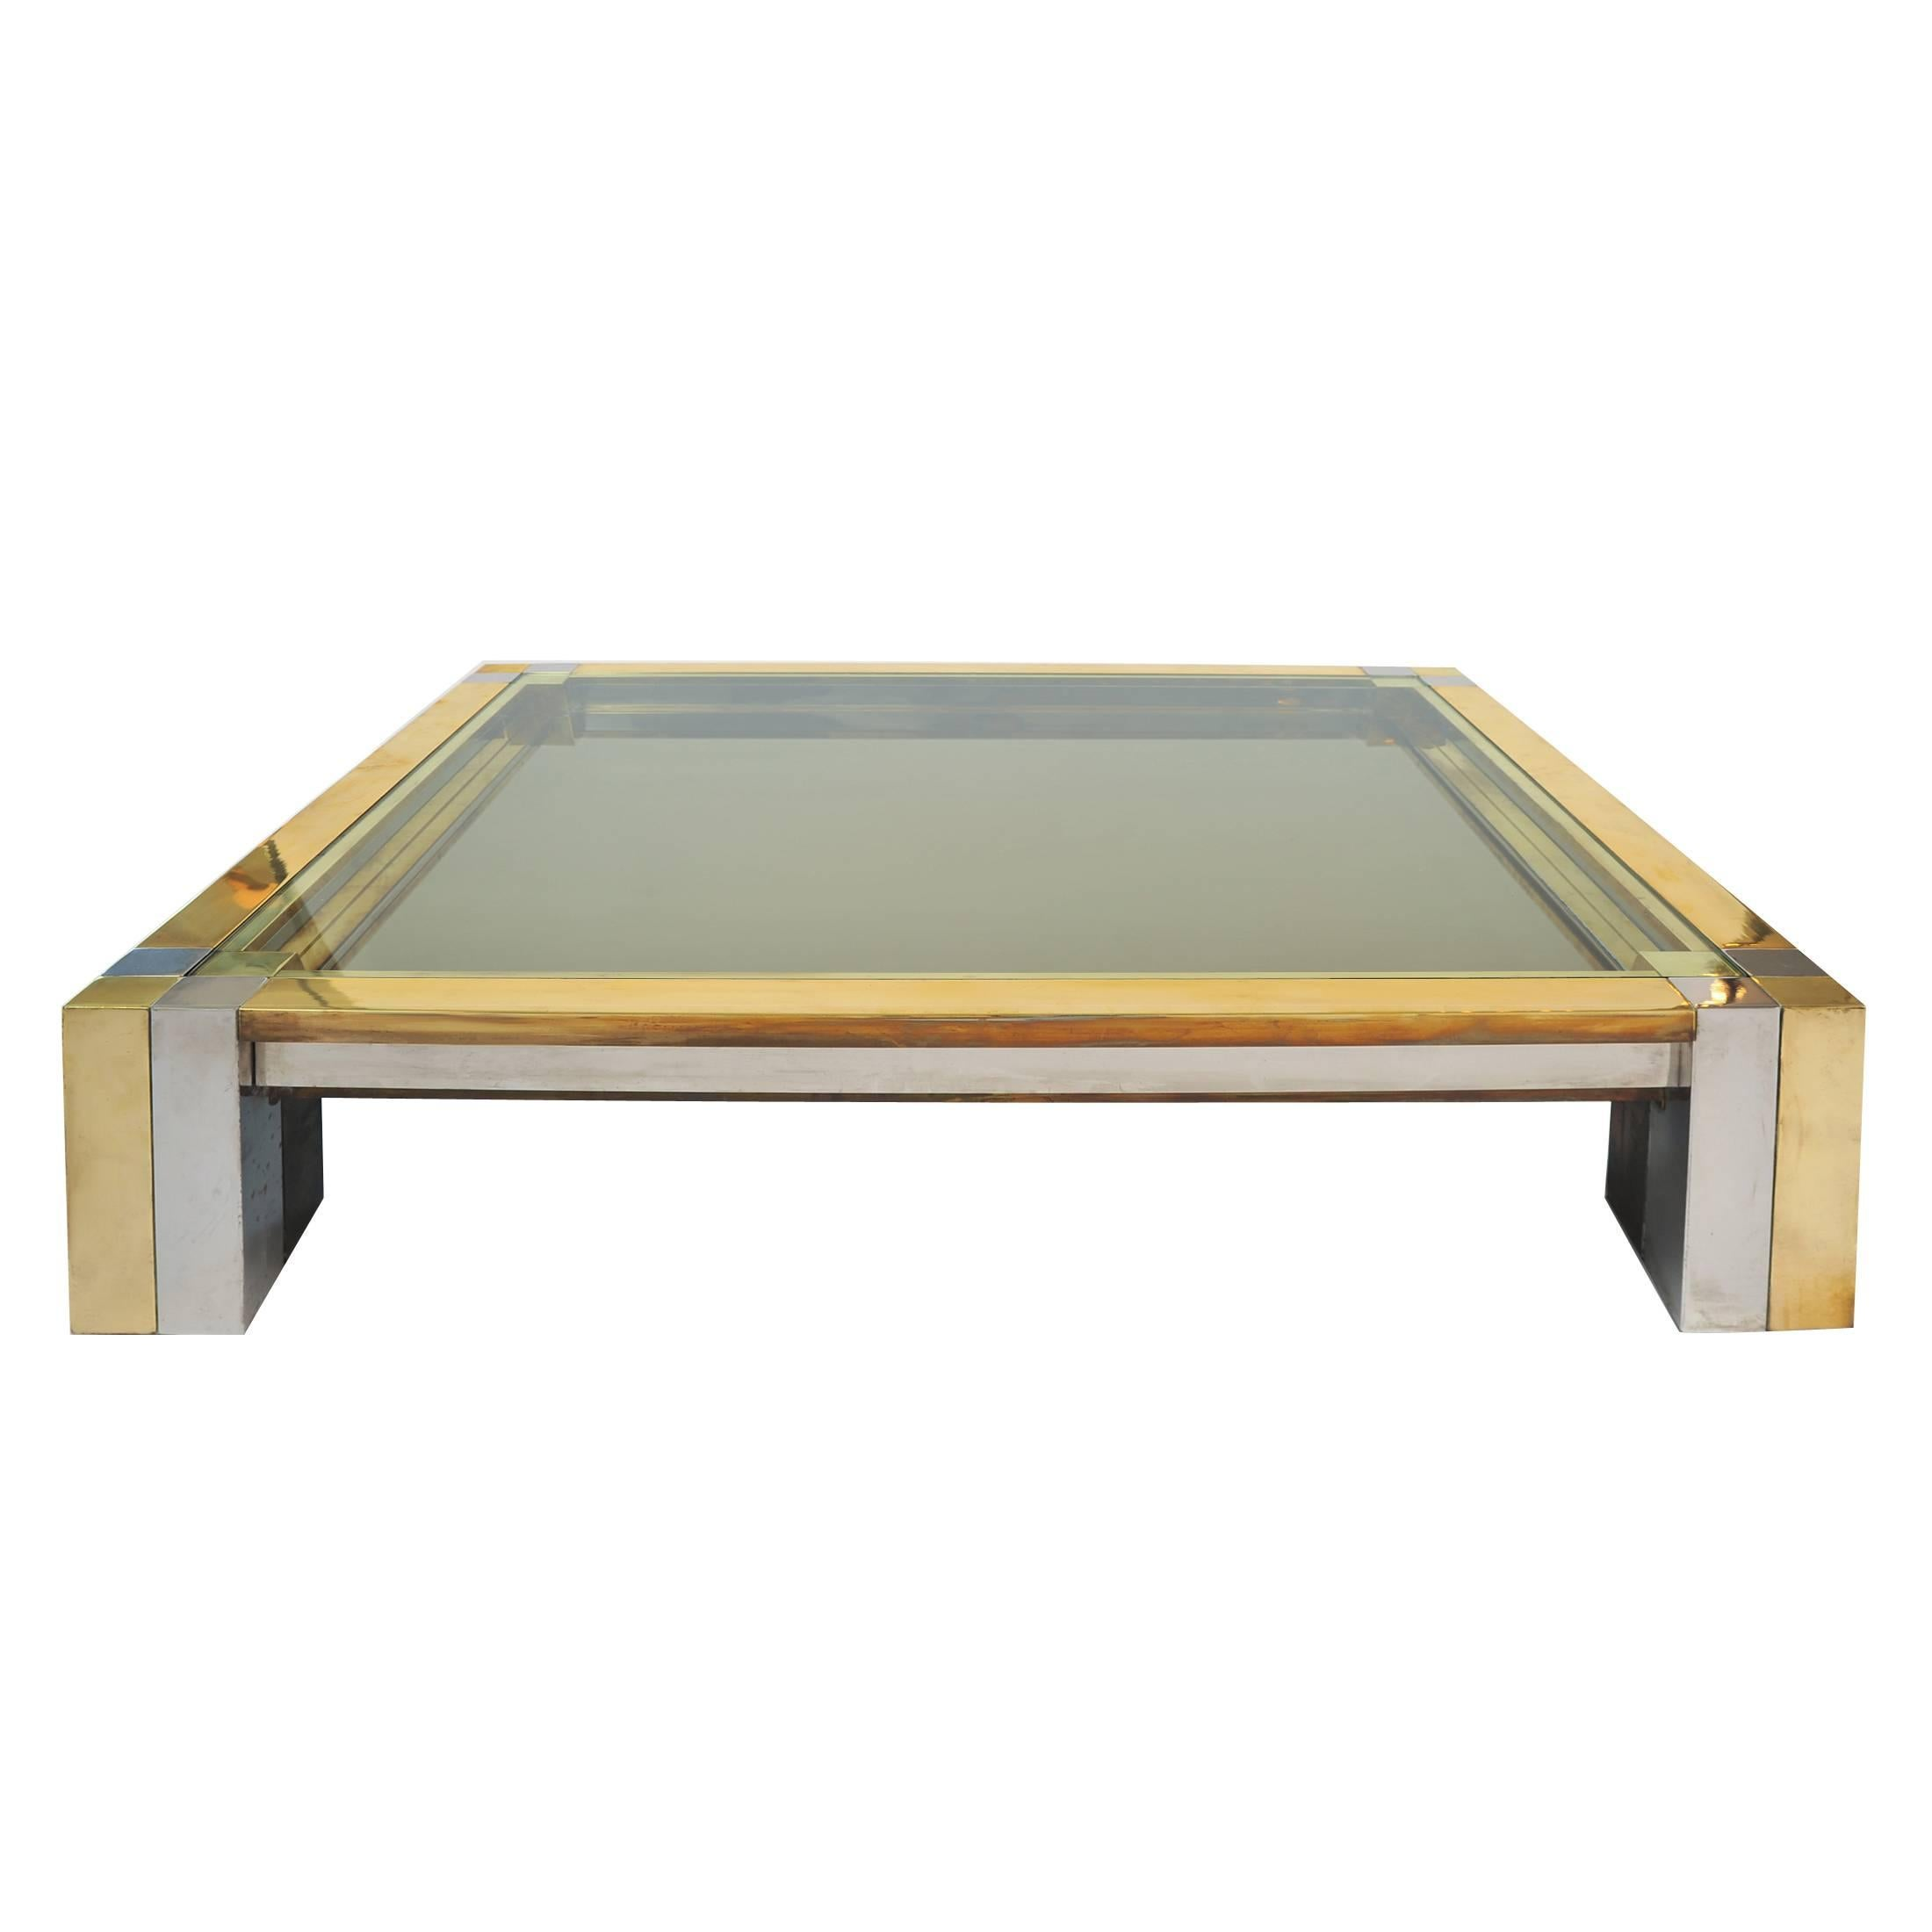 Square Coffee Table With Thick Black Granite Top By Juan